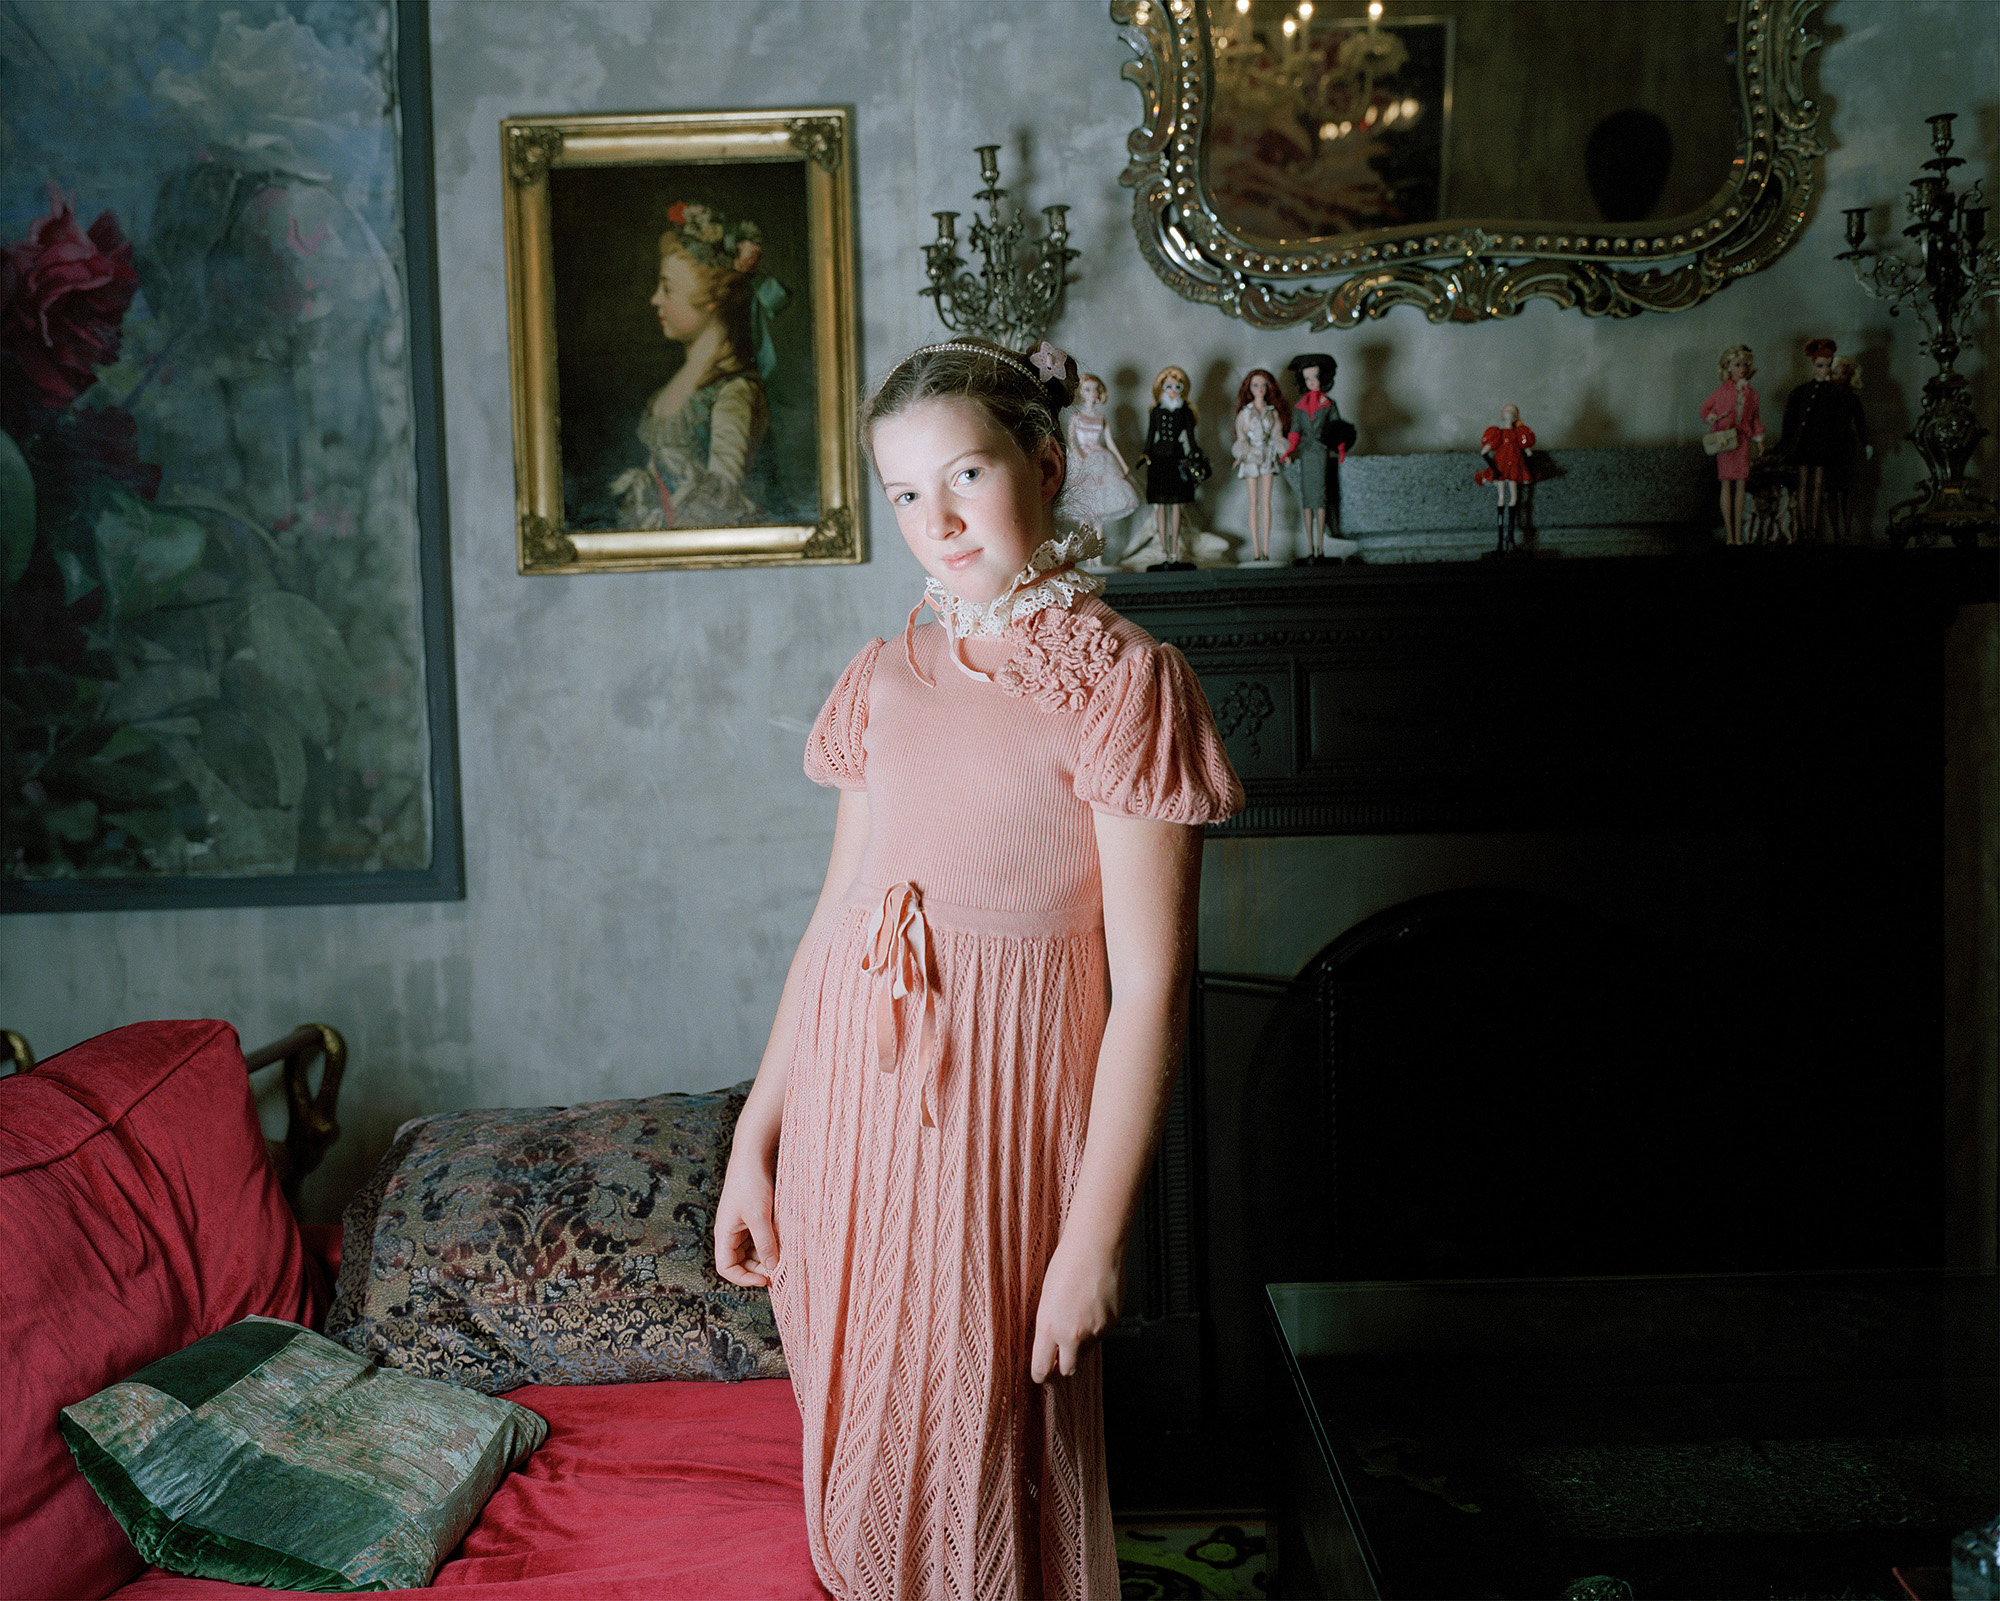 Vasilisa in a Pink Dress, Moscow 2009